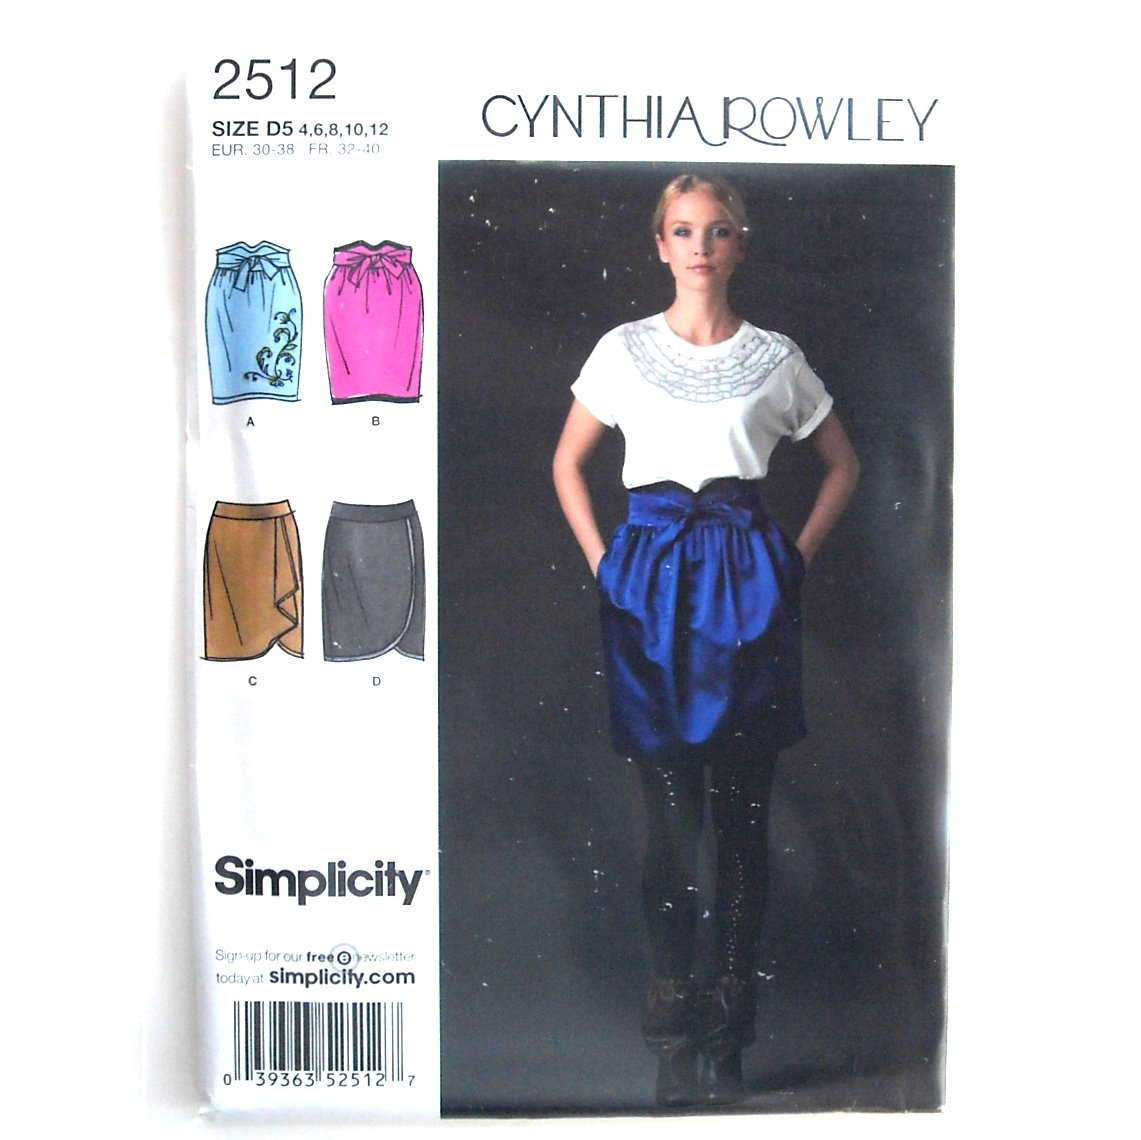 Cynthia Rowley Womens Misses Day Evening Skirts 4 - 12 Simplicity Pattern 2512